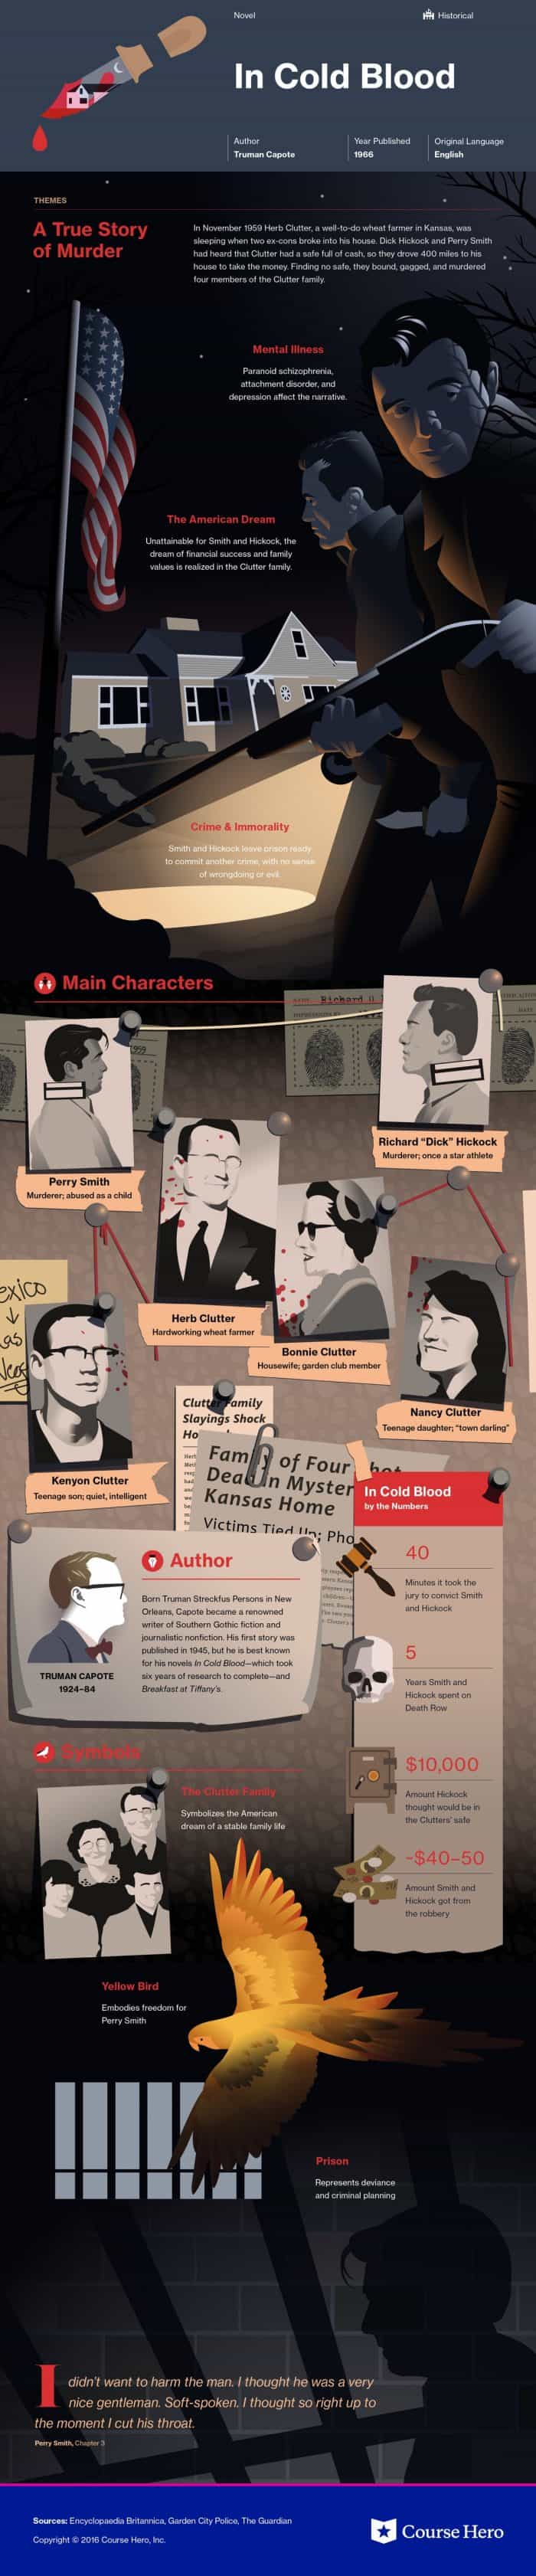 Picture shows motives and what led to the events that happened in the book In Cold Blood